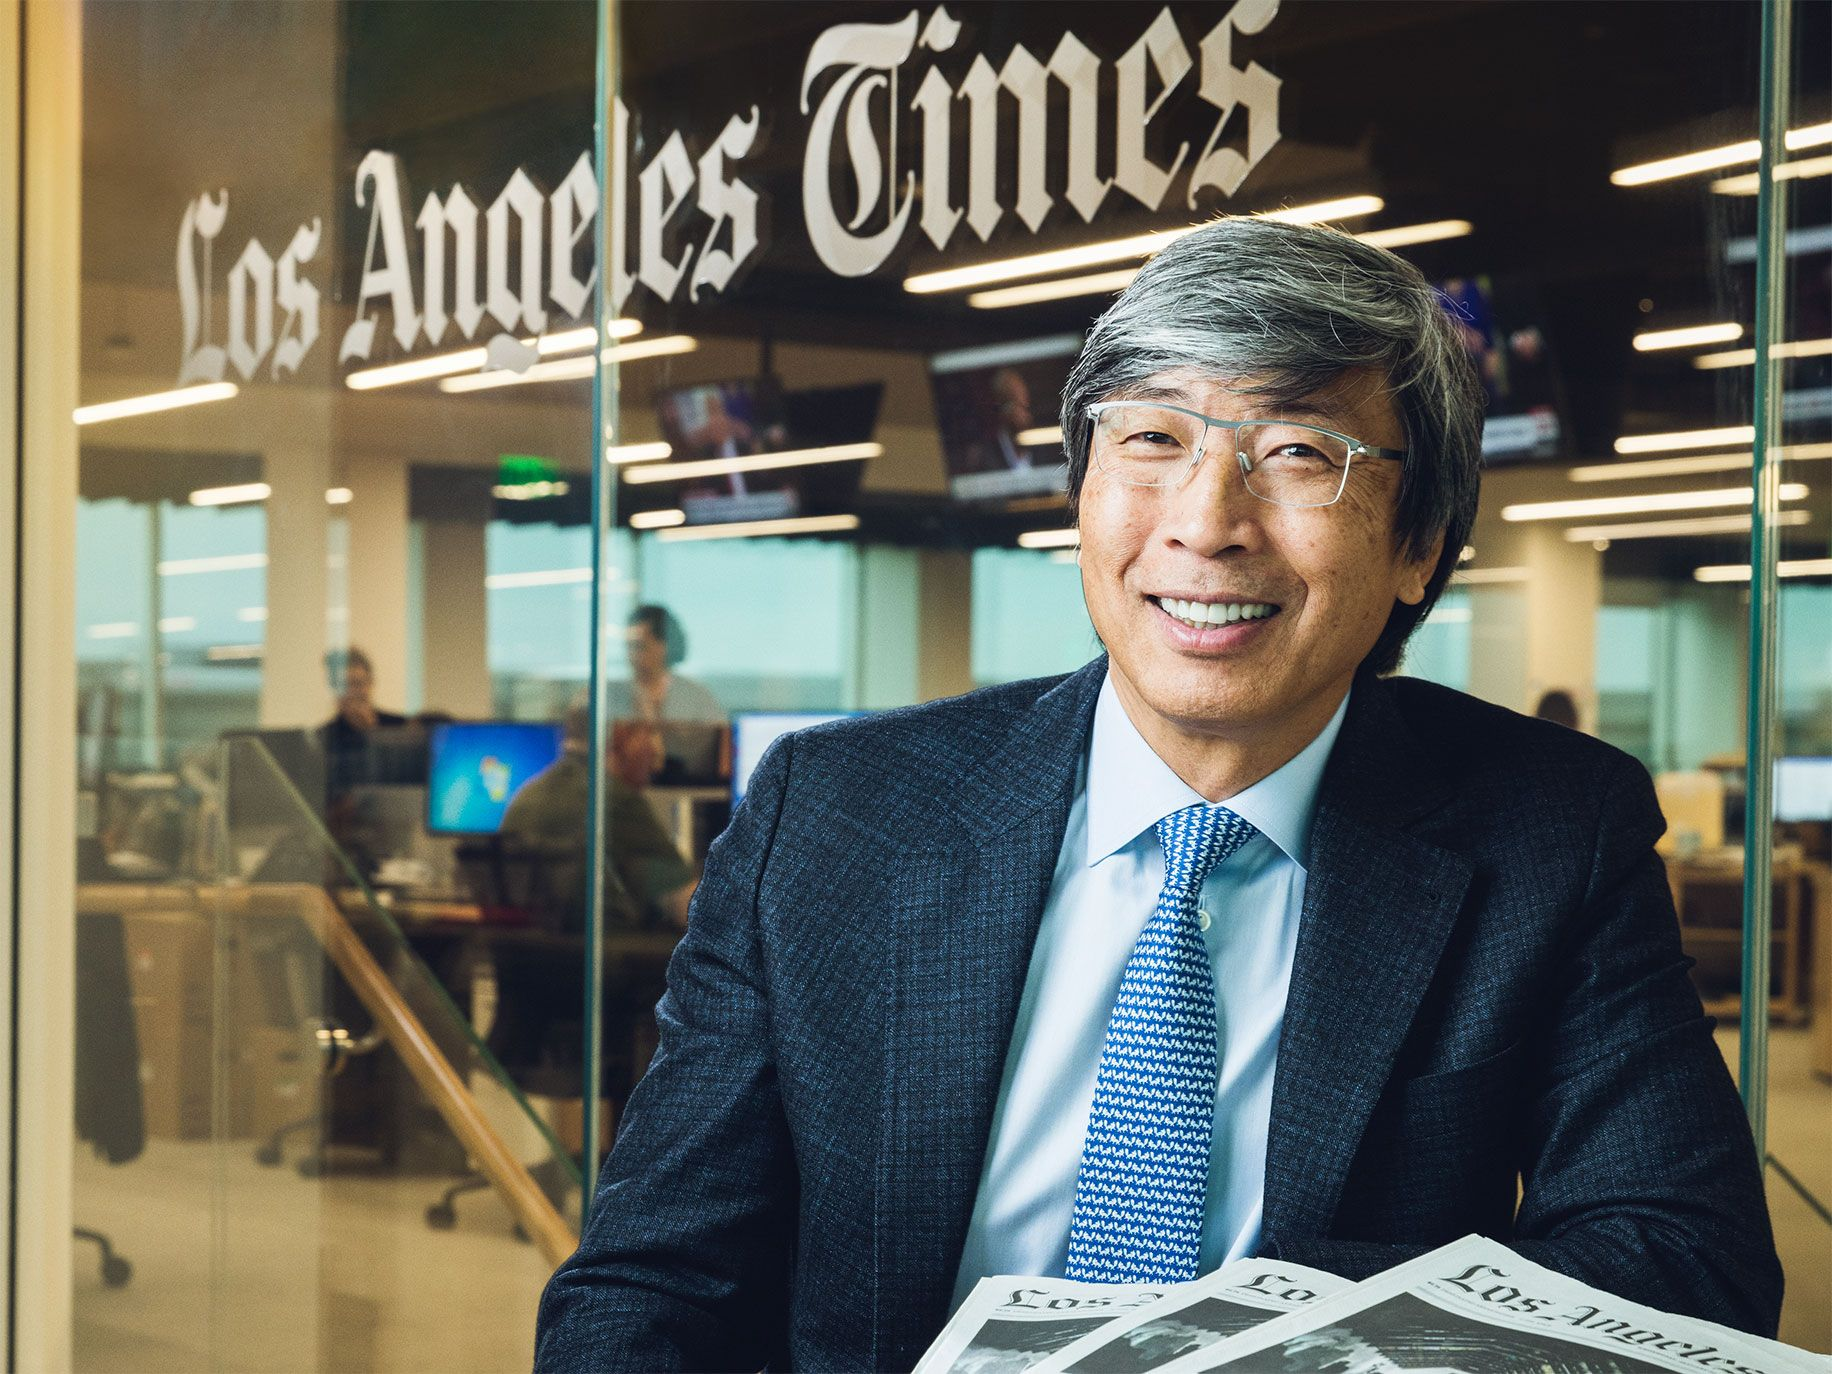 """Patrick Soon-Shiong bought the Los Angeles Times in a $500 million deal and is investing hundreds of millions of dollars to reverse the damage caused by years of neglect. He calls it his """"100-year project"""" and says that resurrecting the newspaper is vital for democracy."""